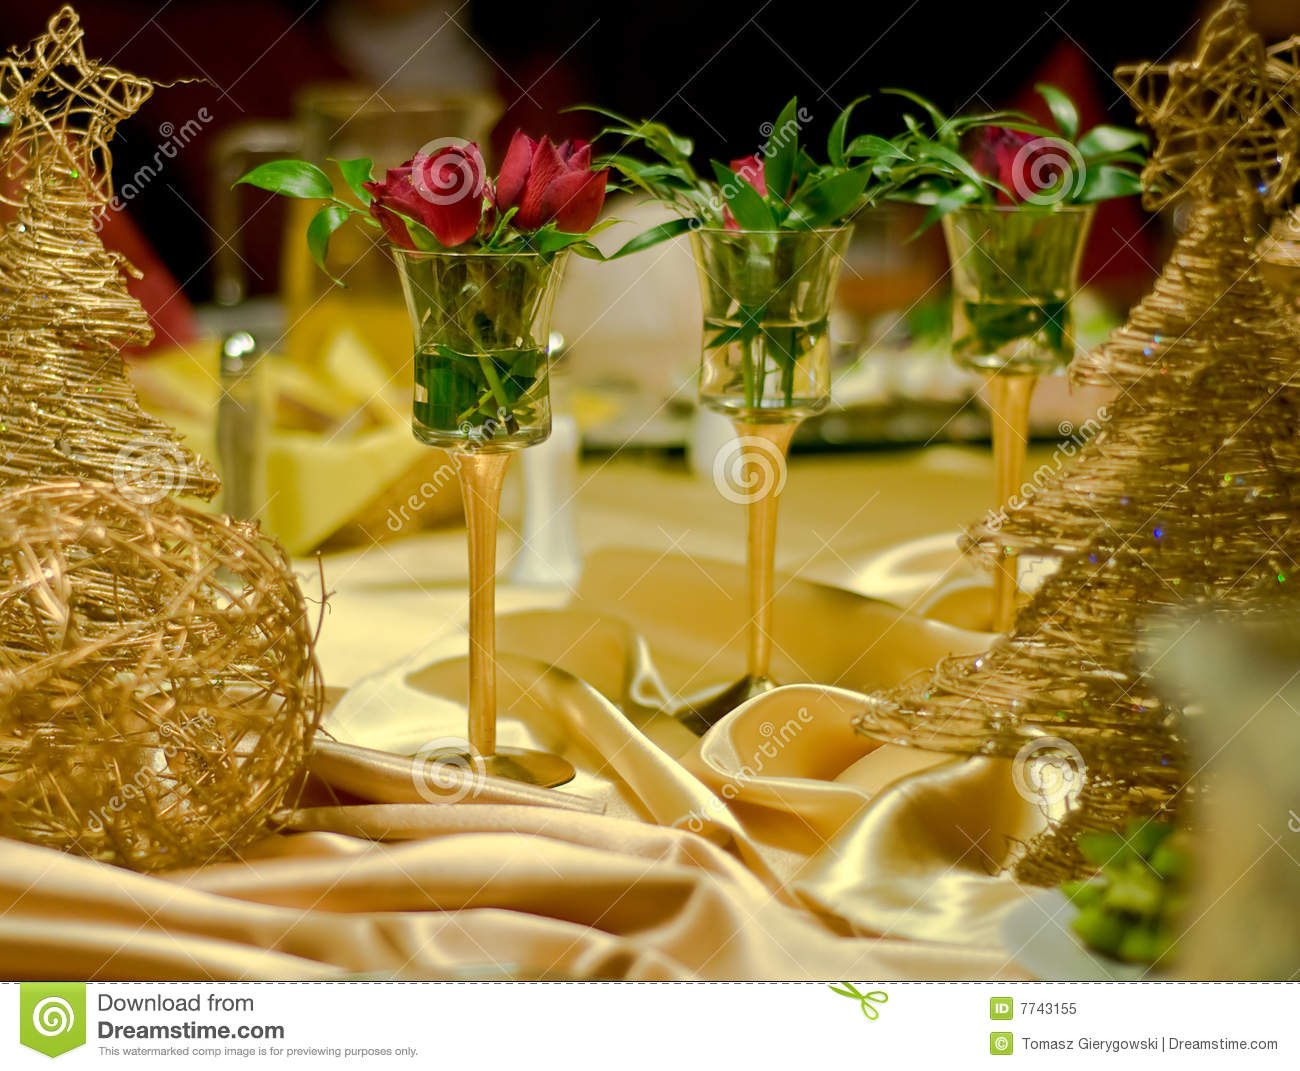 Three roses as a table decoration royalty free stock photo image 7743155 - Deco table rose ...